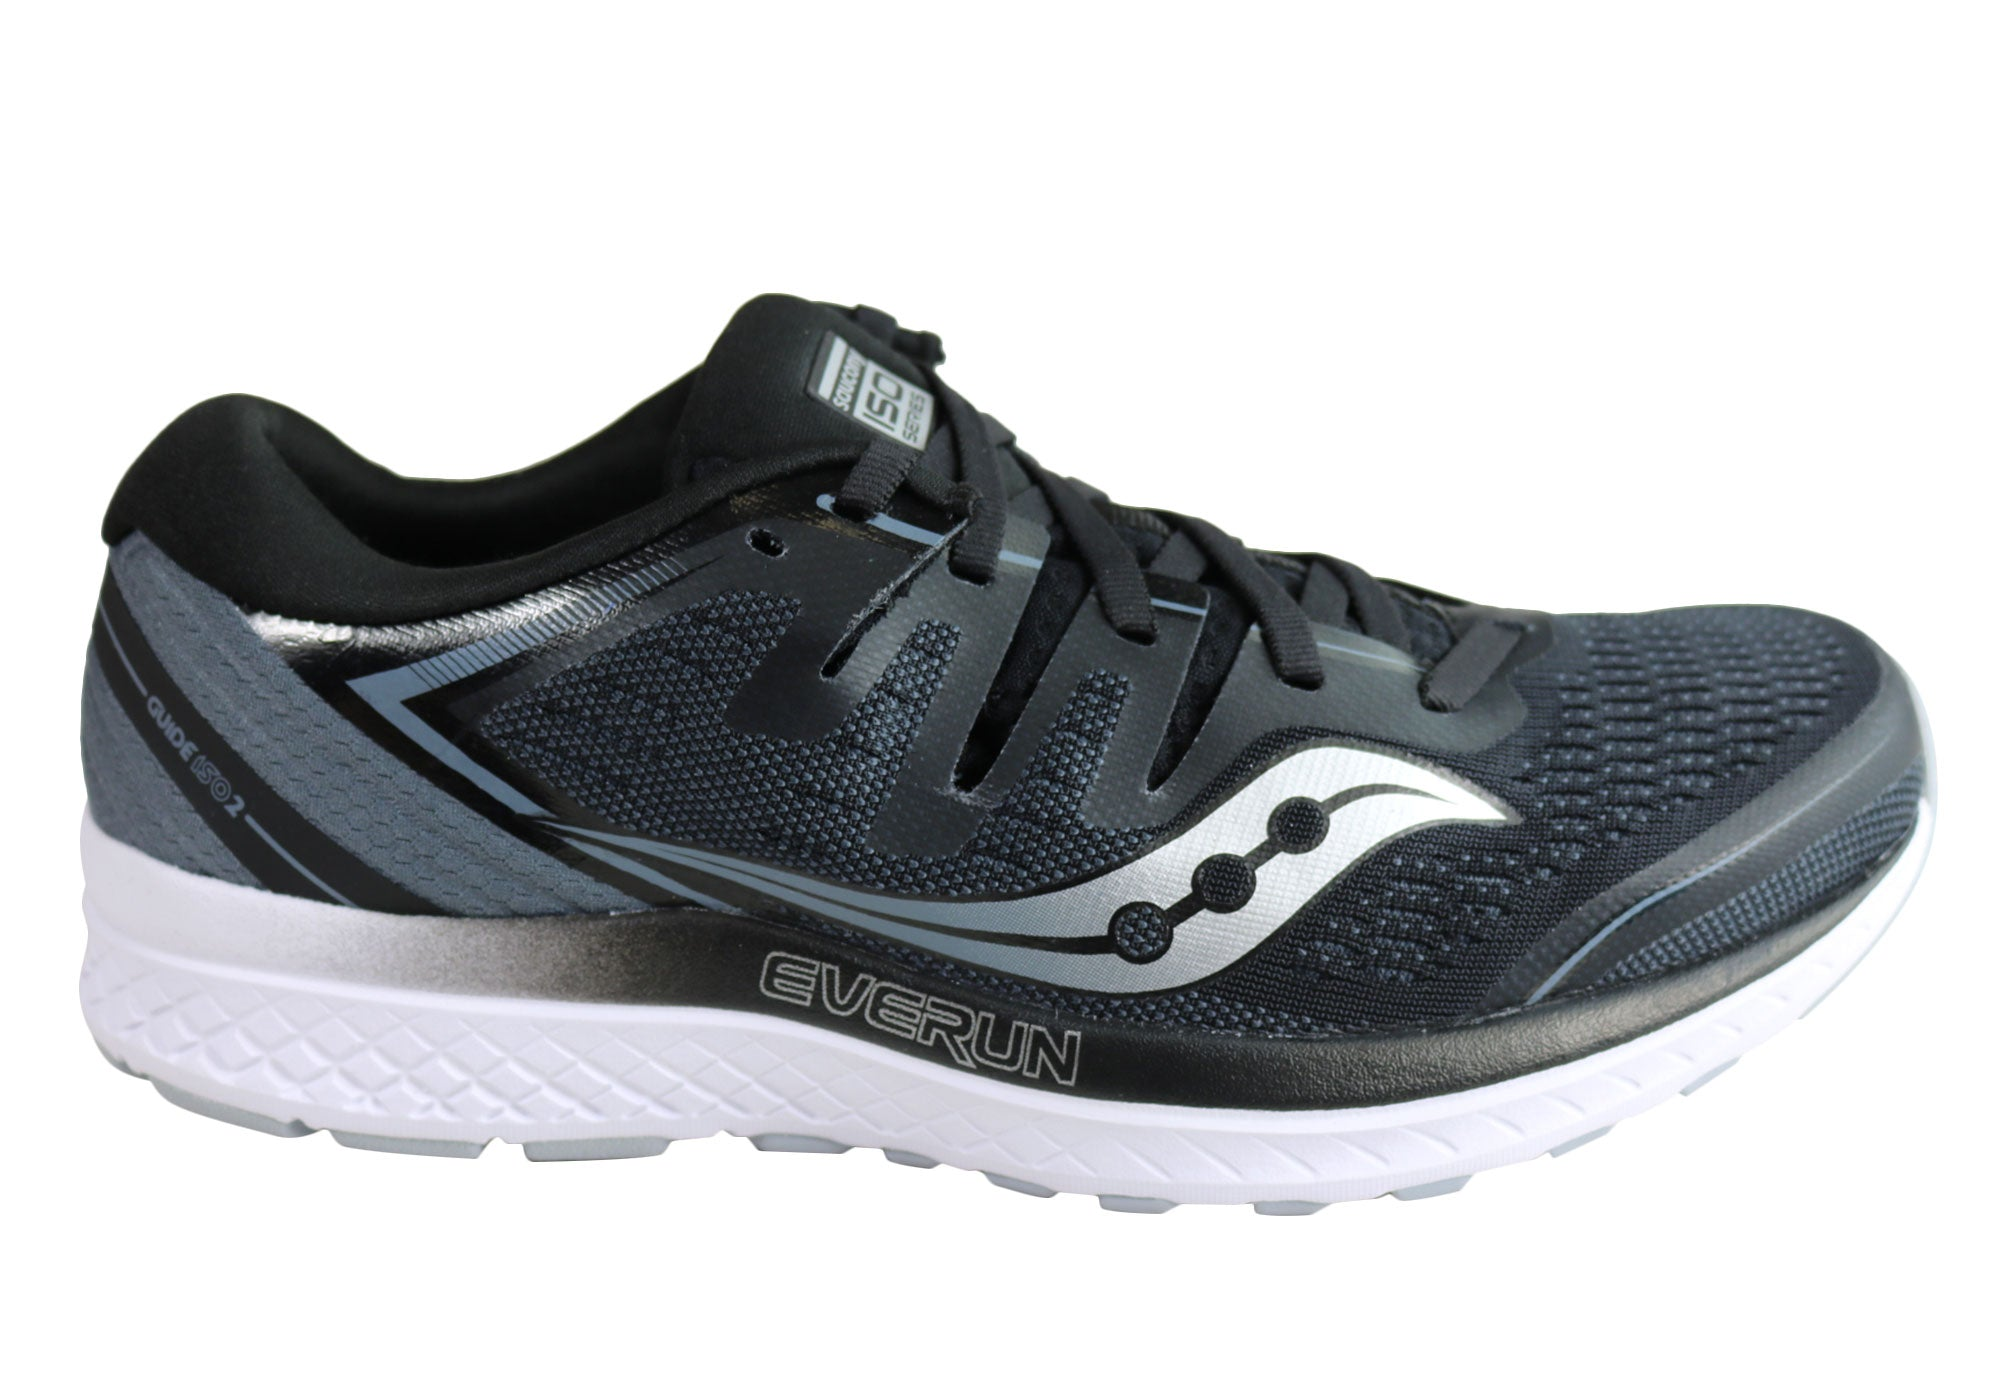 saucony cushioned shoes